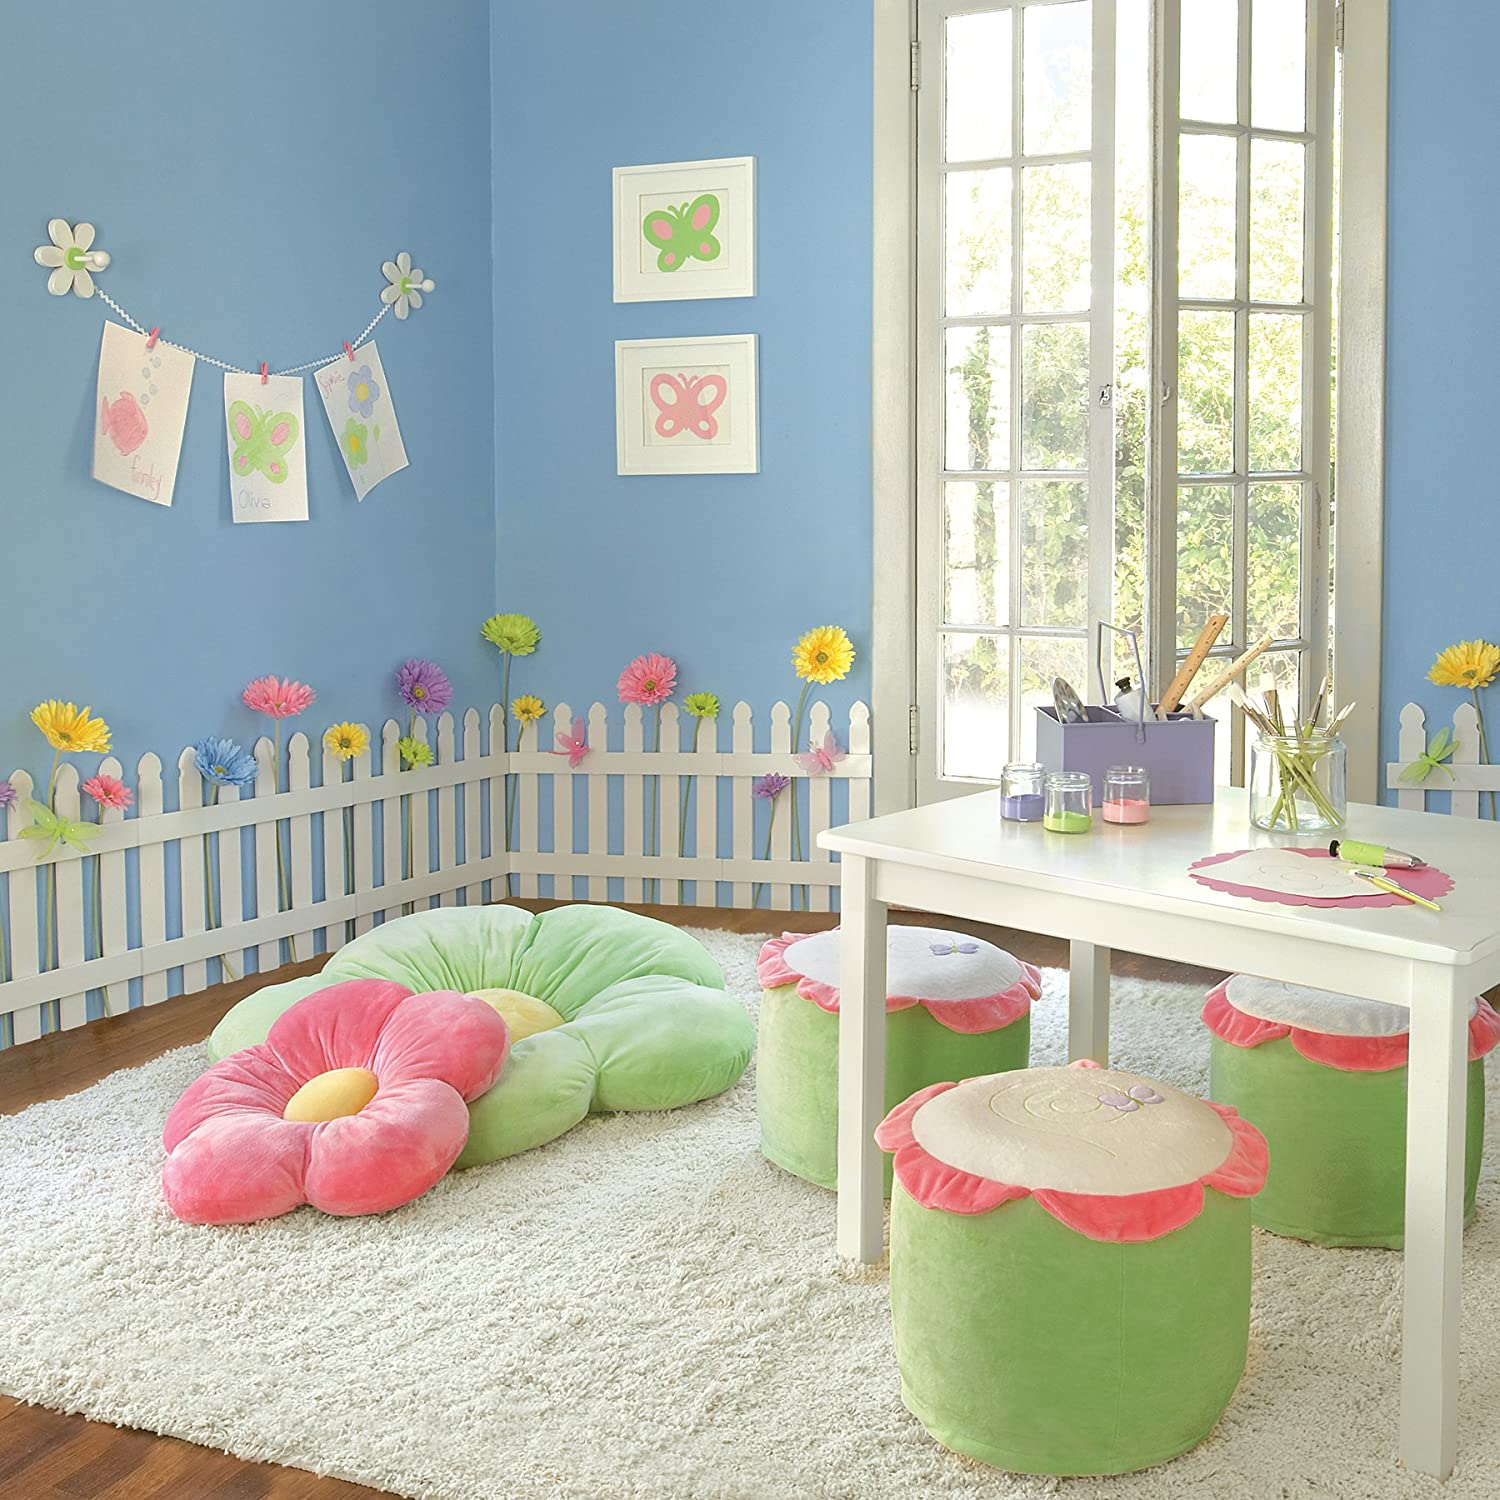 Kids Room Decoration: White Wooden Picket Fences For Kids Room Wall Border